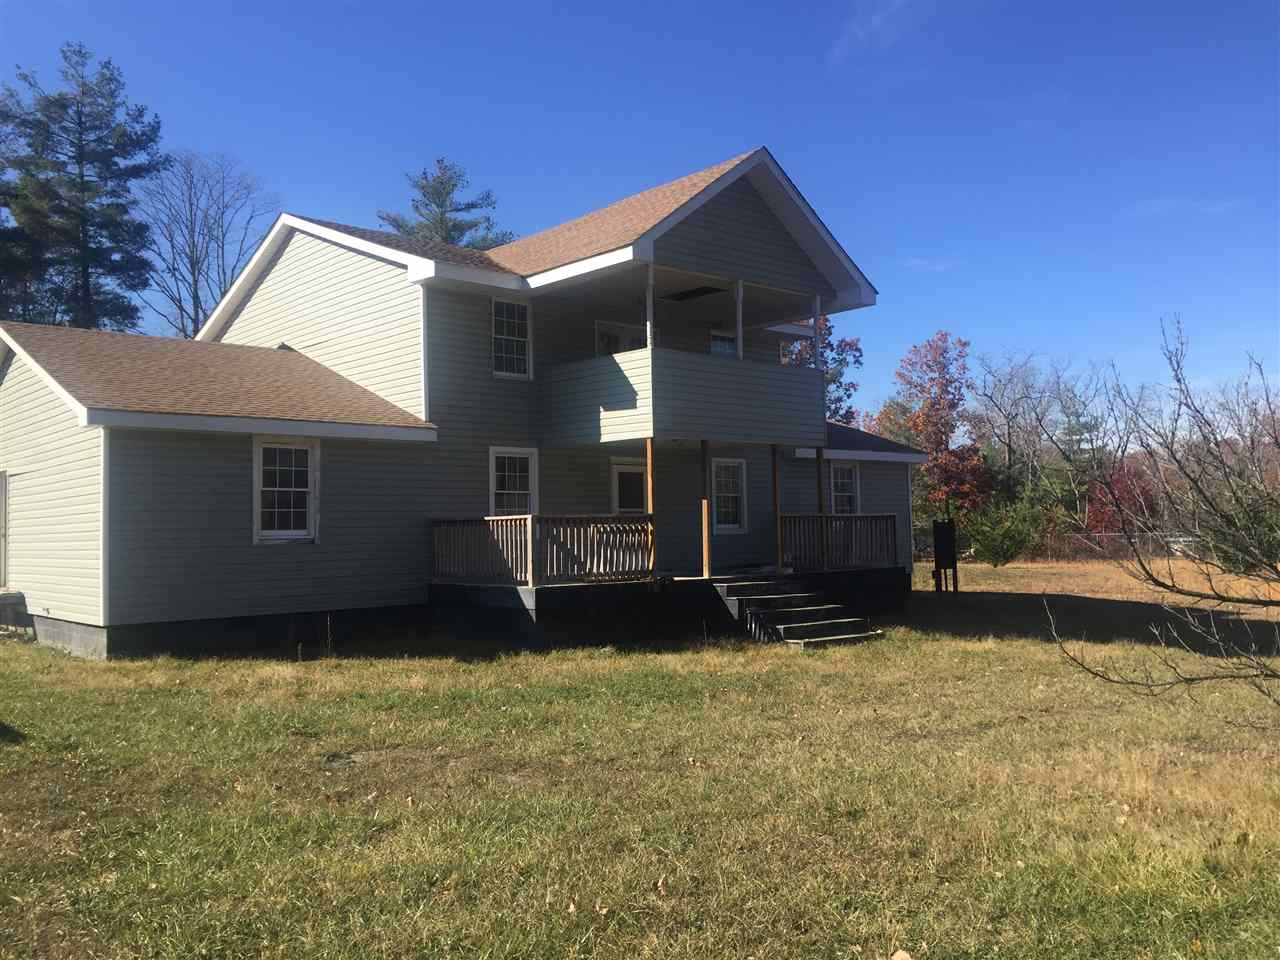 55 LAUREL DR, GREENVILLE, VA 24440